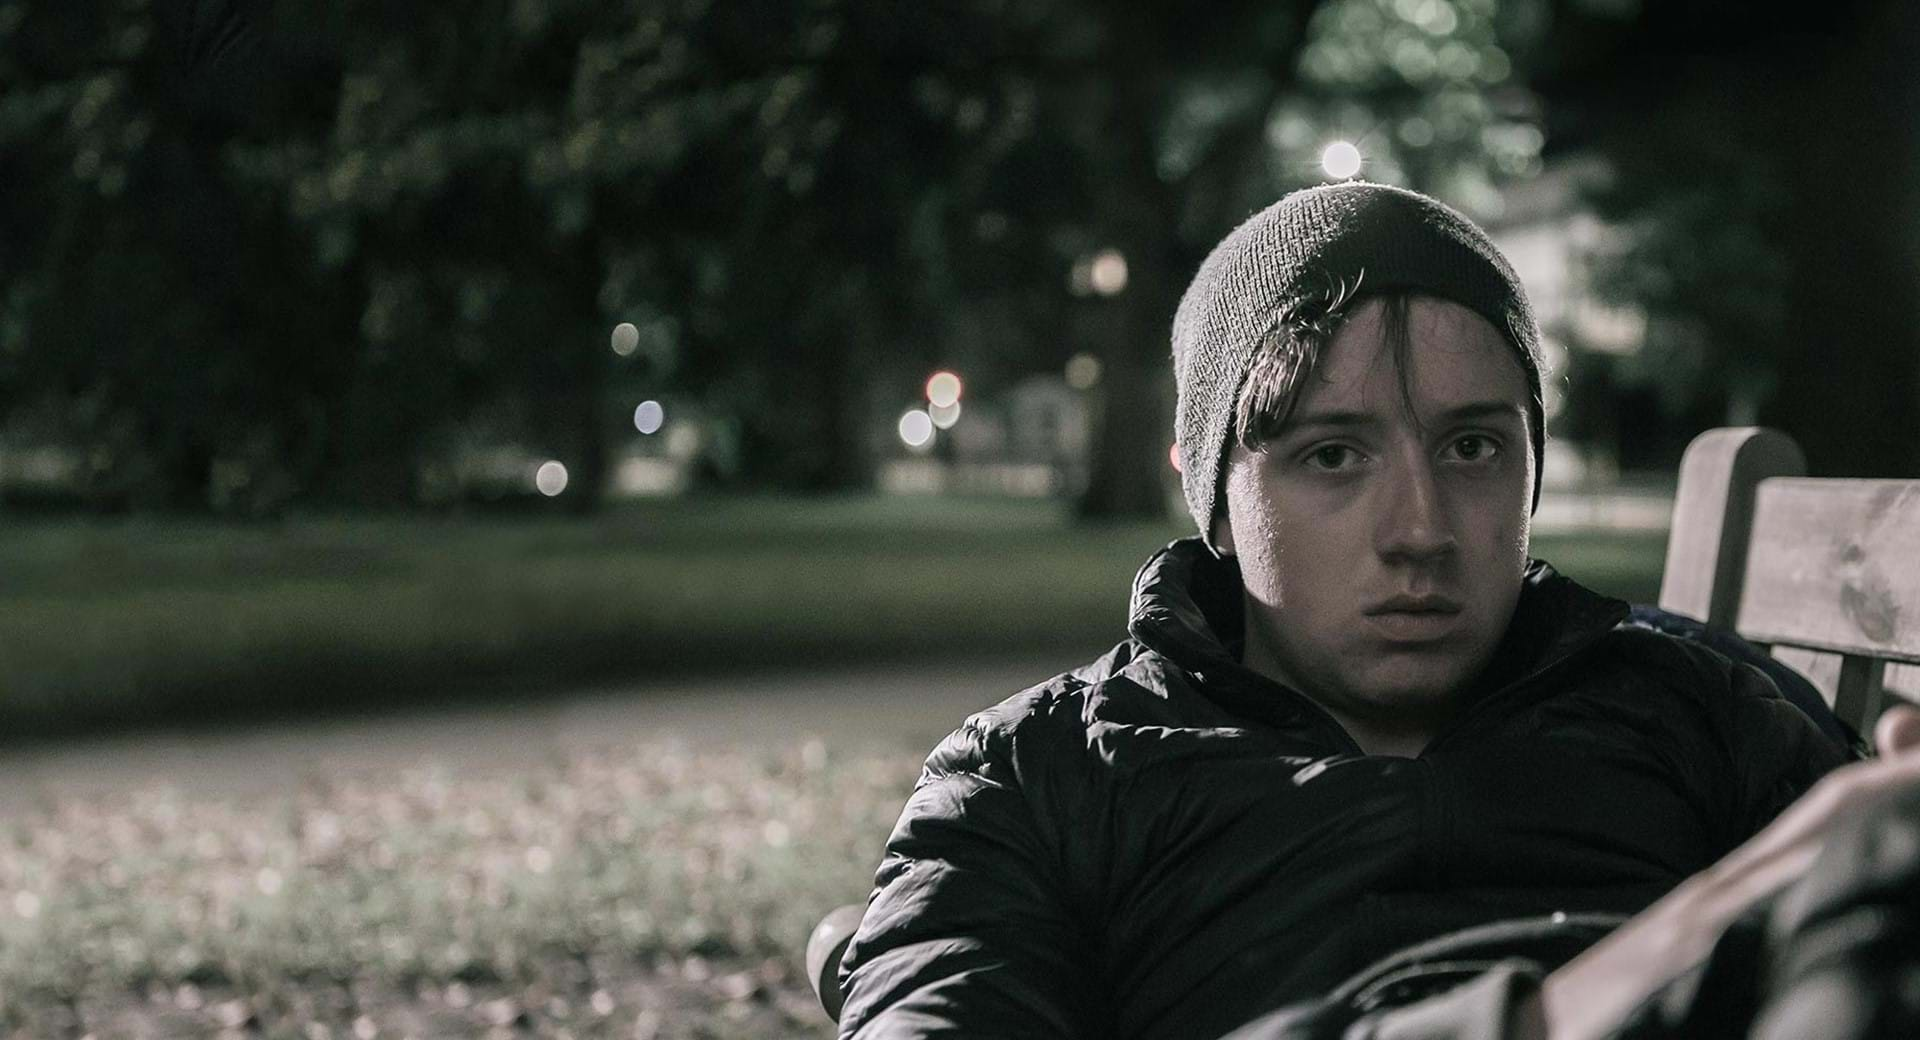 A boy sits on a park bench at nighttime.